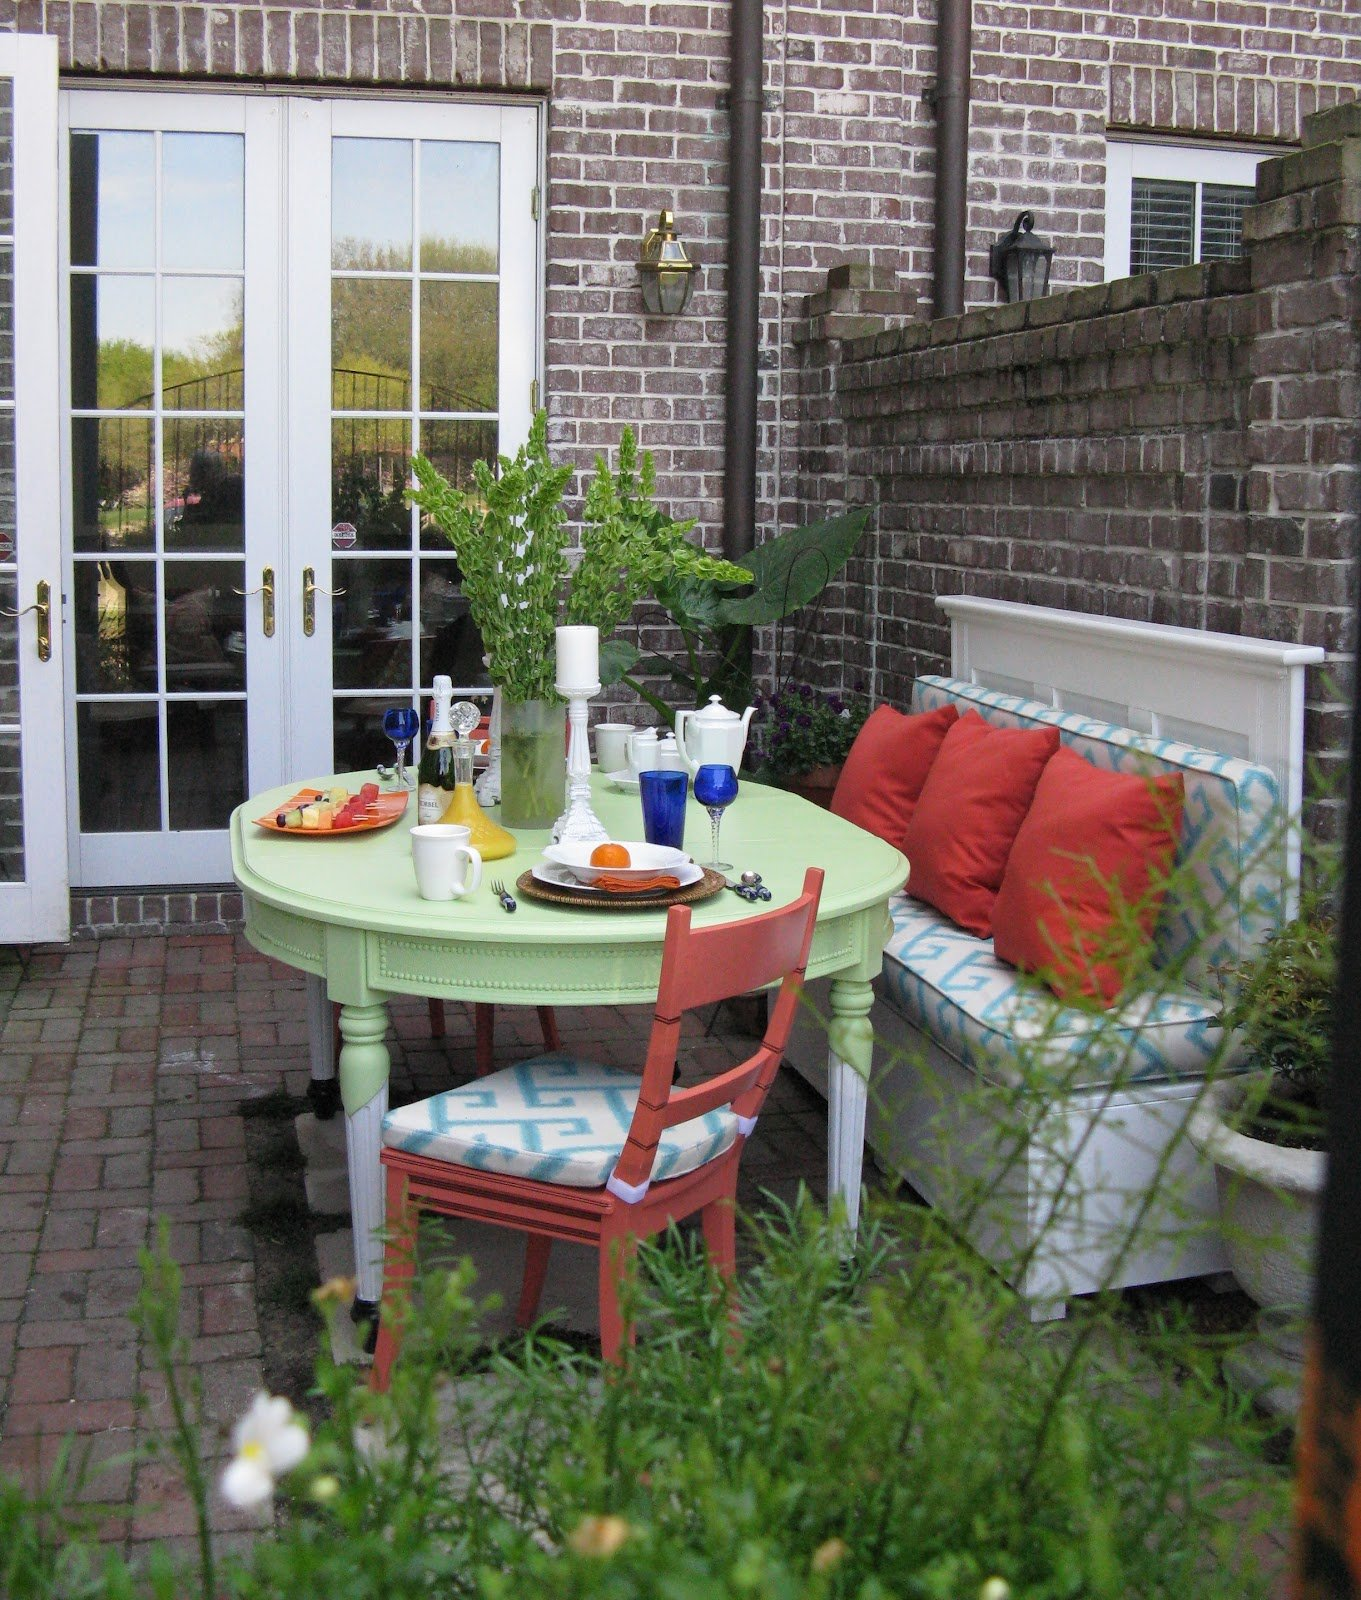 Small Space | Patio Inspiration - A Thoughtful Place on Patio Ideas For Small Spaces id=88973